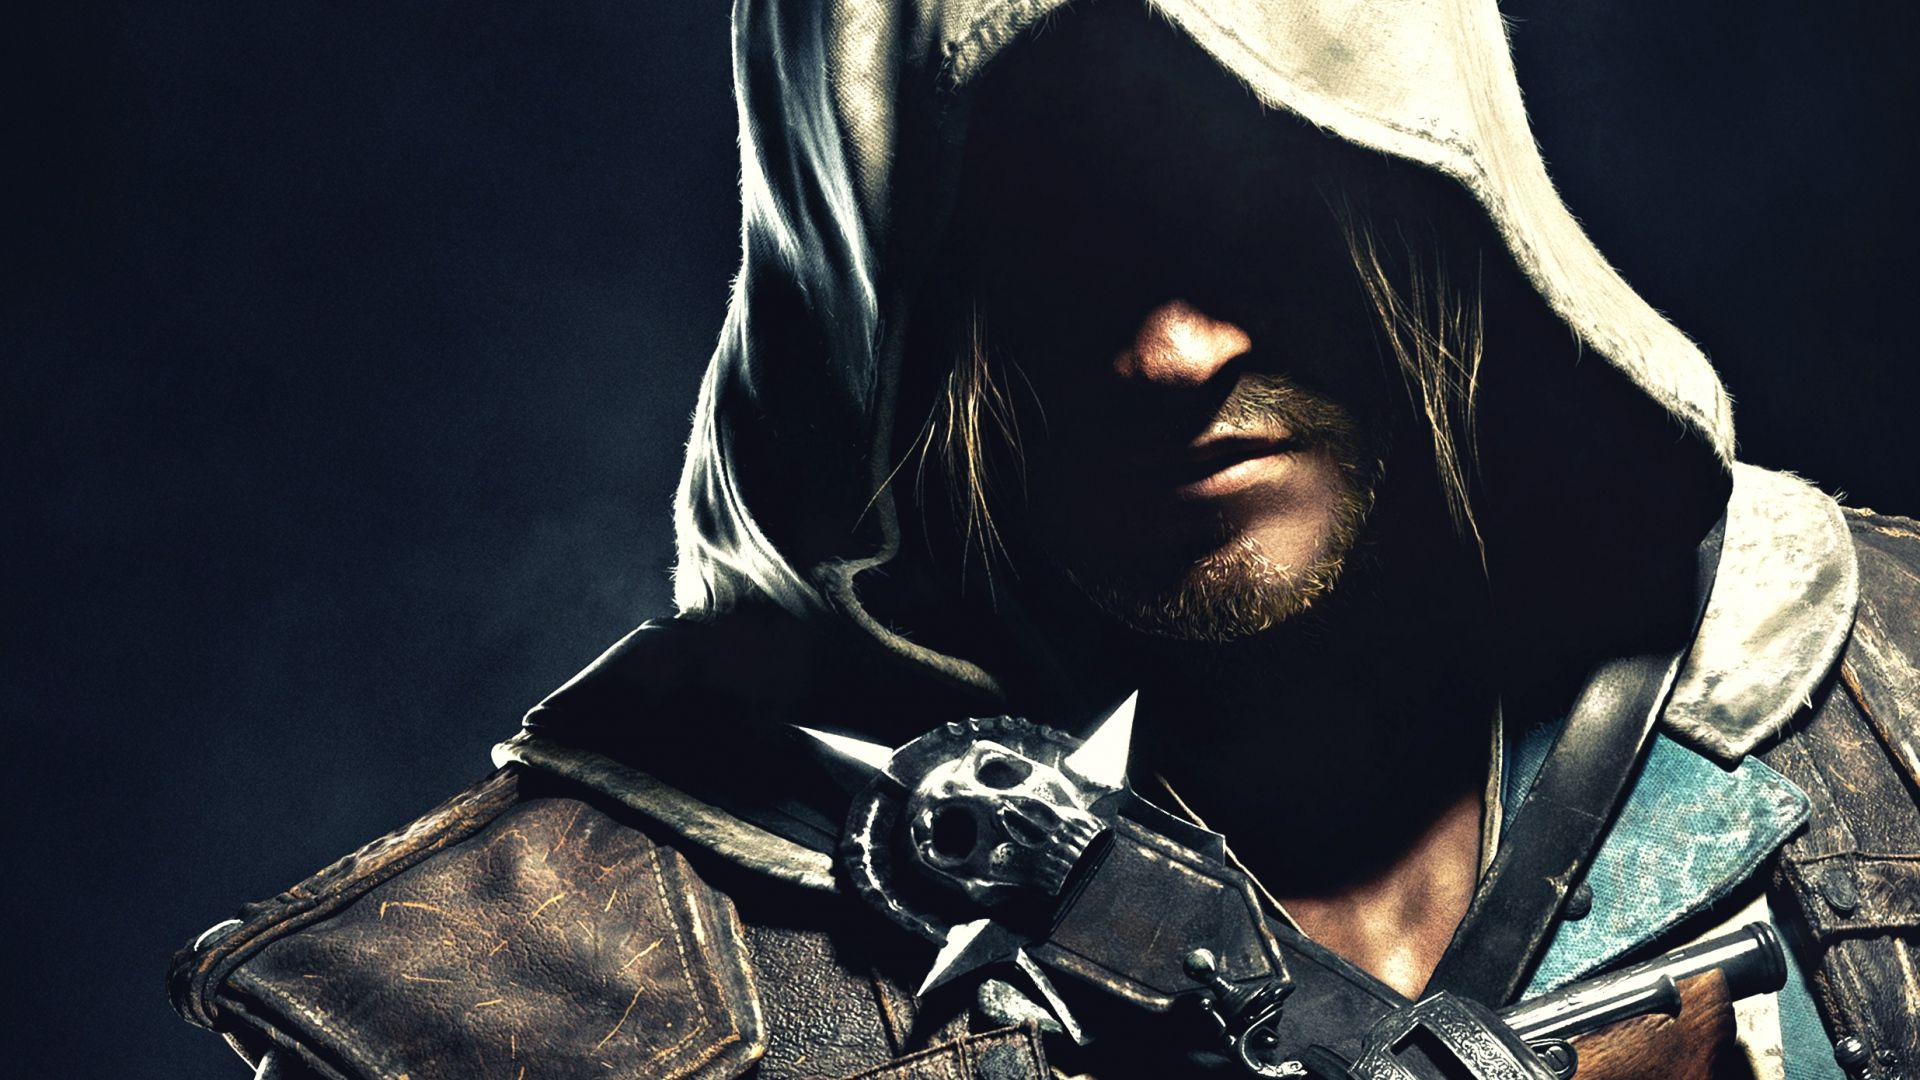 1920x1080 Wallpaper edward kenway, hood, face, shadow